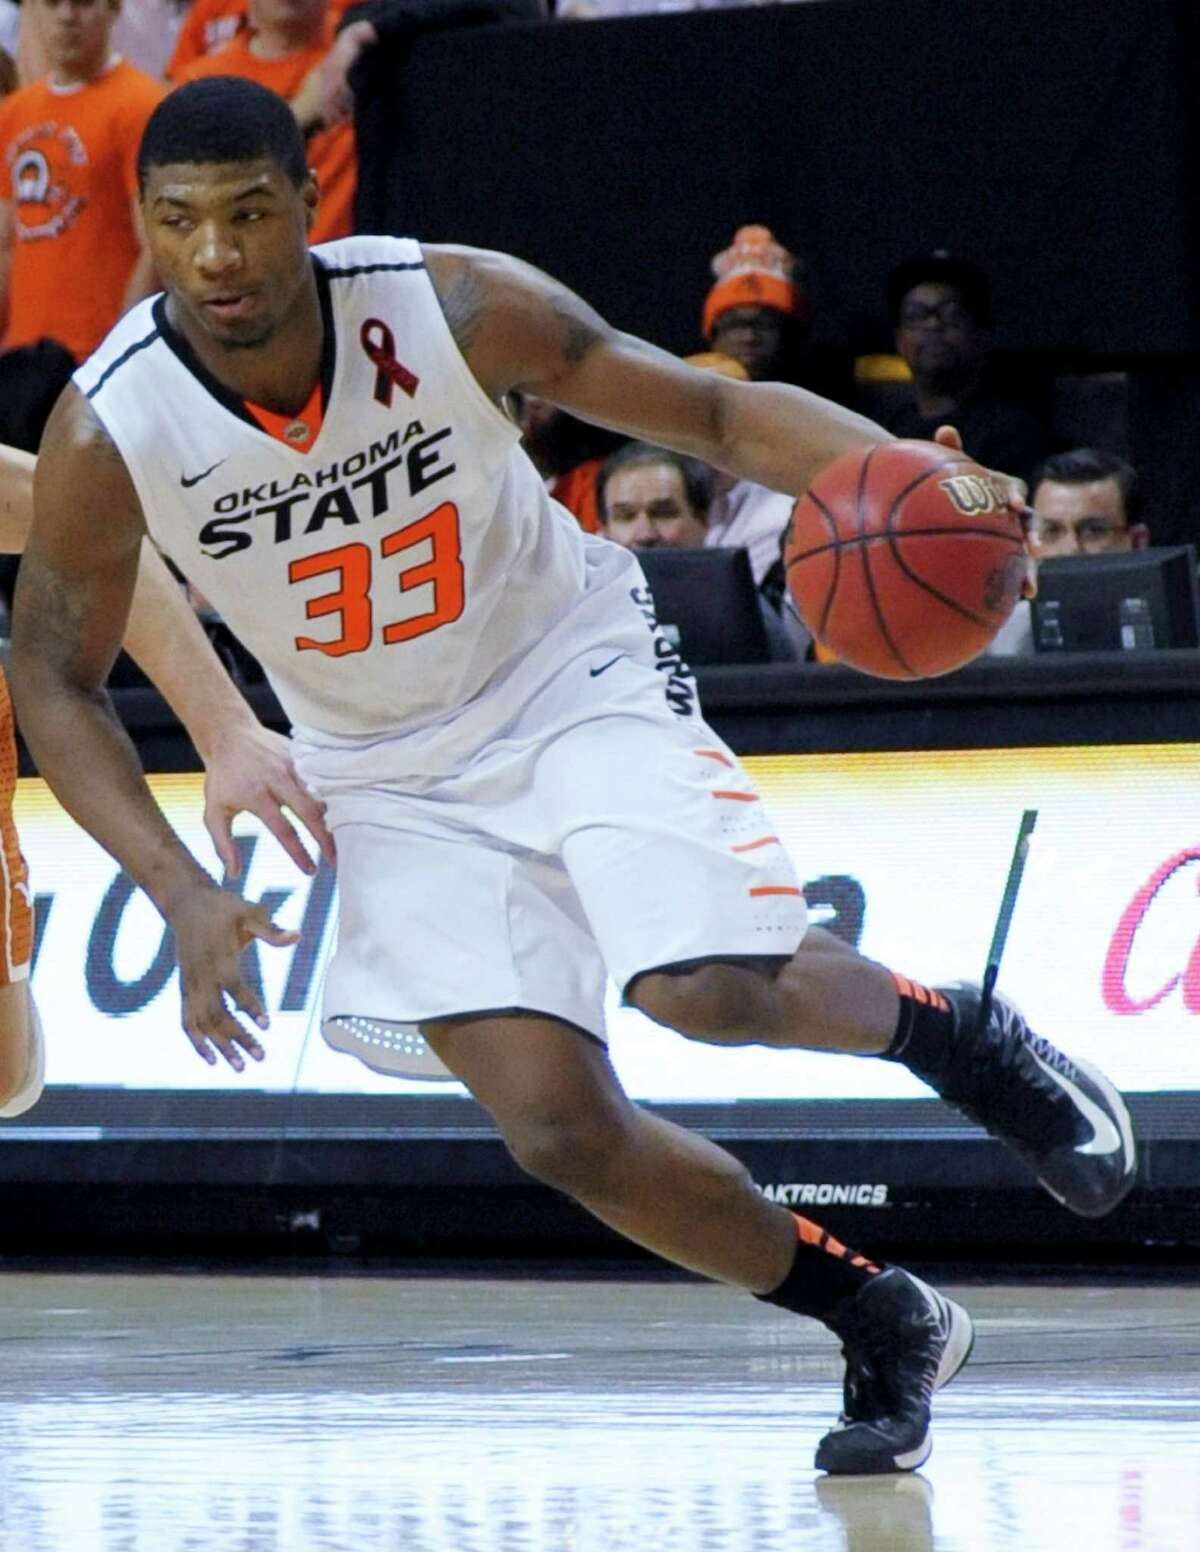 Player and Freshman of the Year: Marcus Smart, Oklahoma State - The conference's best all-around player was a force from his first game. He led the conference in steals, was fifth in field-goal percentage, sixth in scoring and assists and 15th in rebounds. And he also finished as our choice for Freshman of the Year in a league stacked with some good ones this season.PHOTO: Smart during the second half against Texas in Stillwater, Okla., March 2, 2013. Oklahoma State won 78-65.